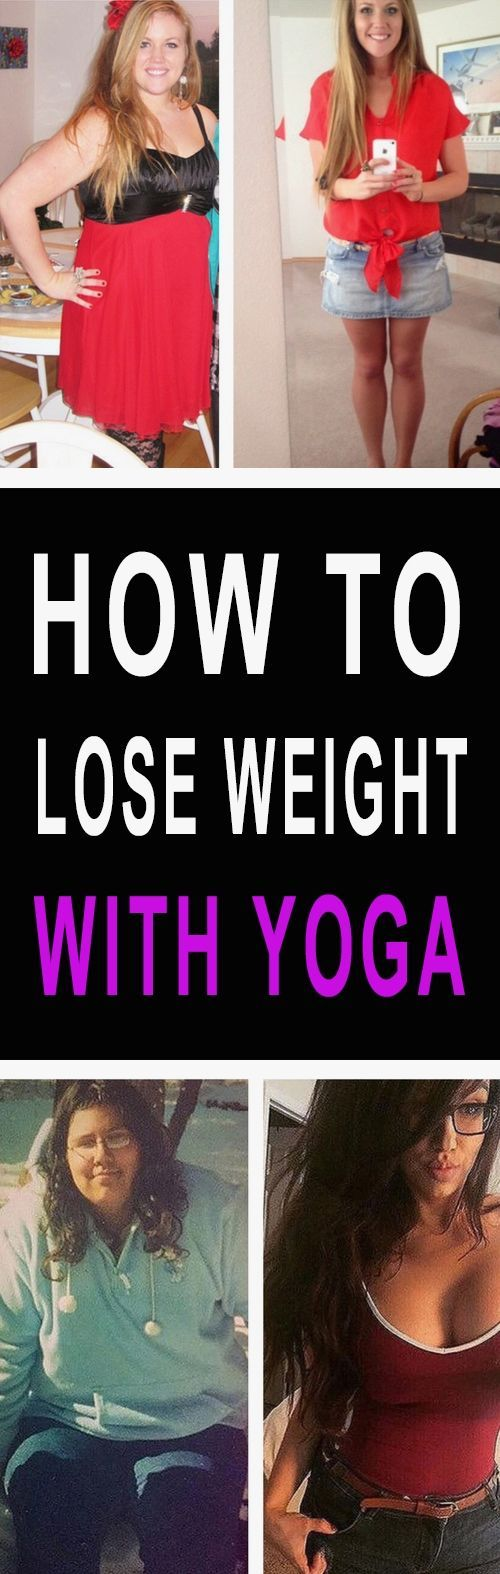 Introduction to yoga for weight loss Yoga is a very ancient spiritual practice which was developed in India many millennia ago. When I first started to practice yoga I understood the benefits for relaxation, decreasing stress and improving flexibility. I have learned that the advantages of regular yoga practice do not stop with those benefits. …